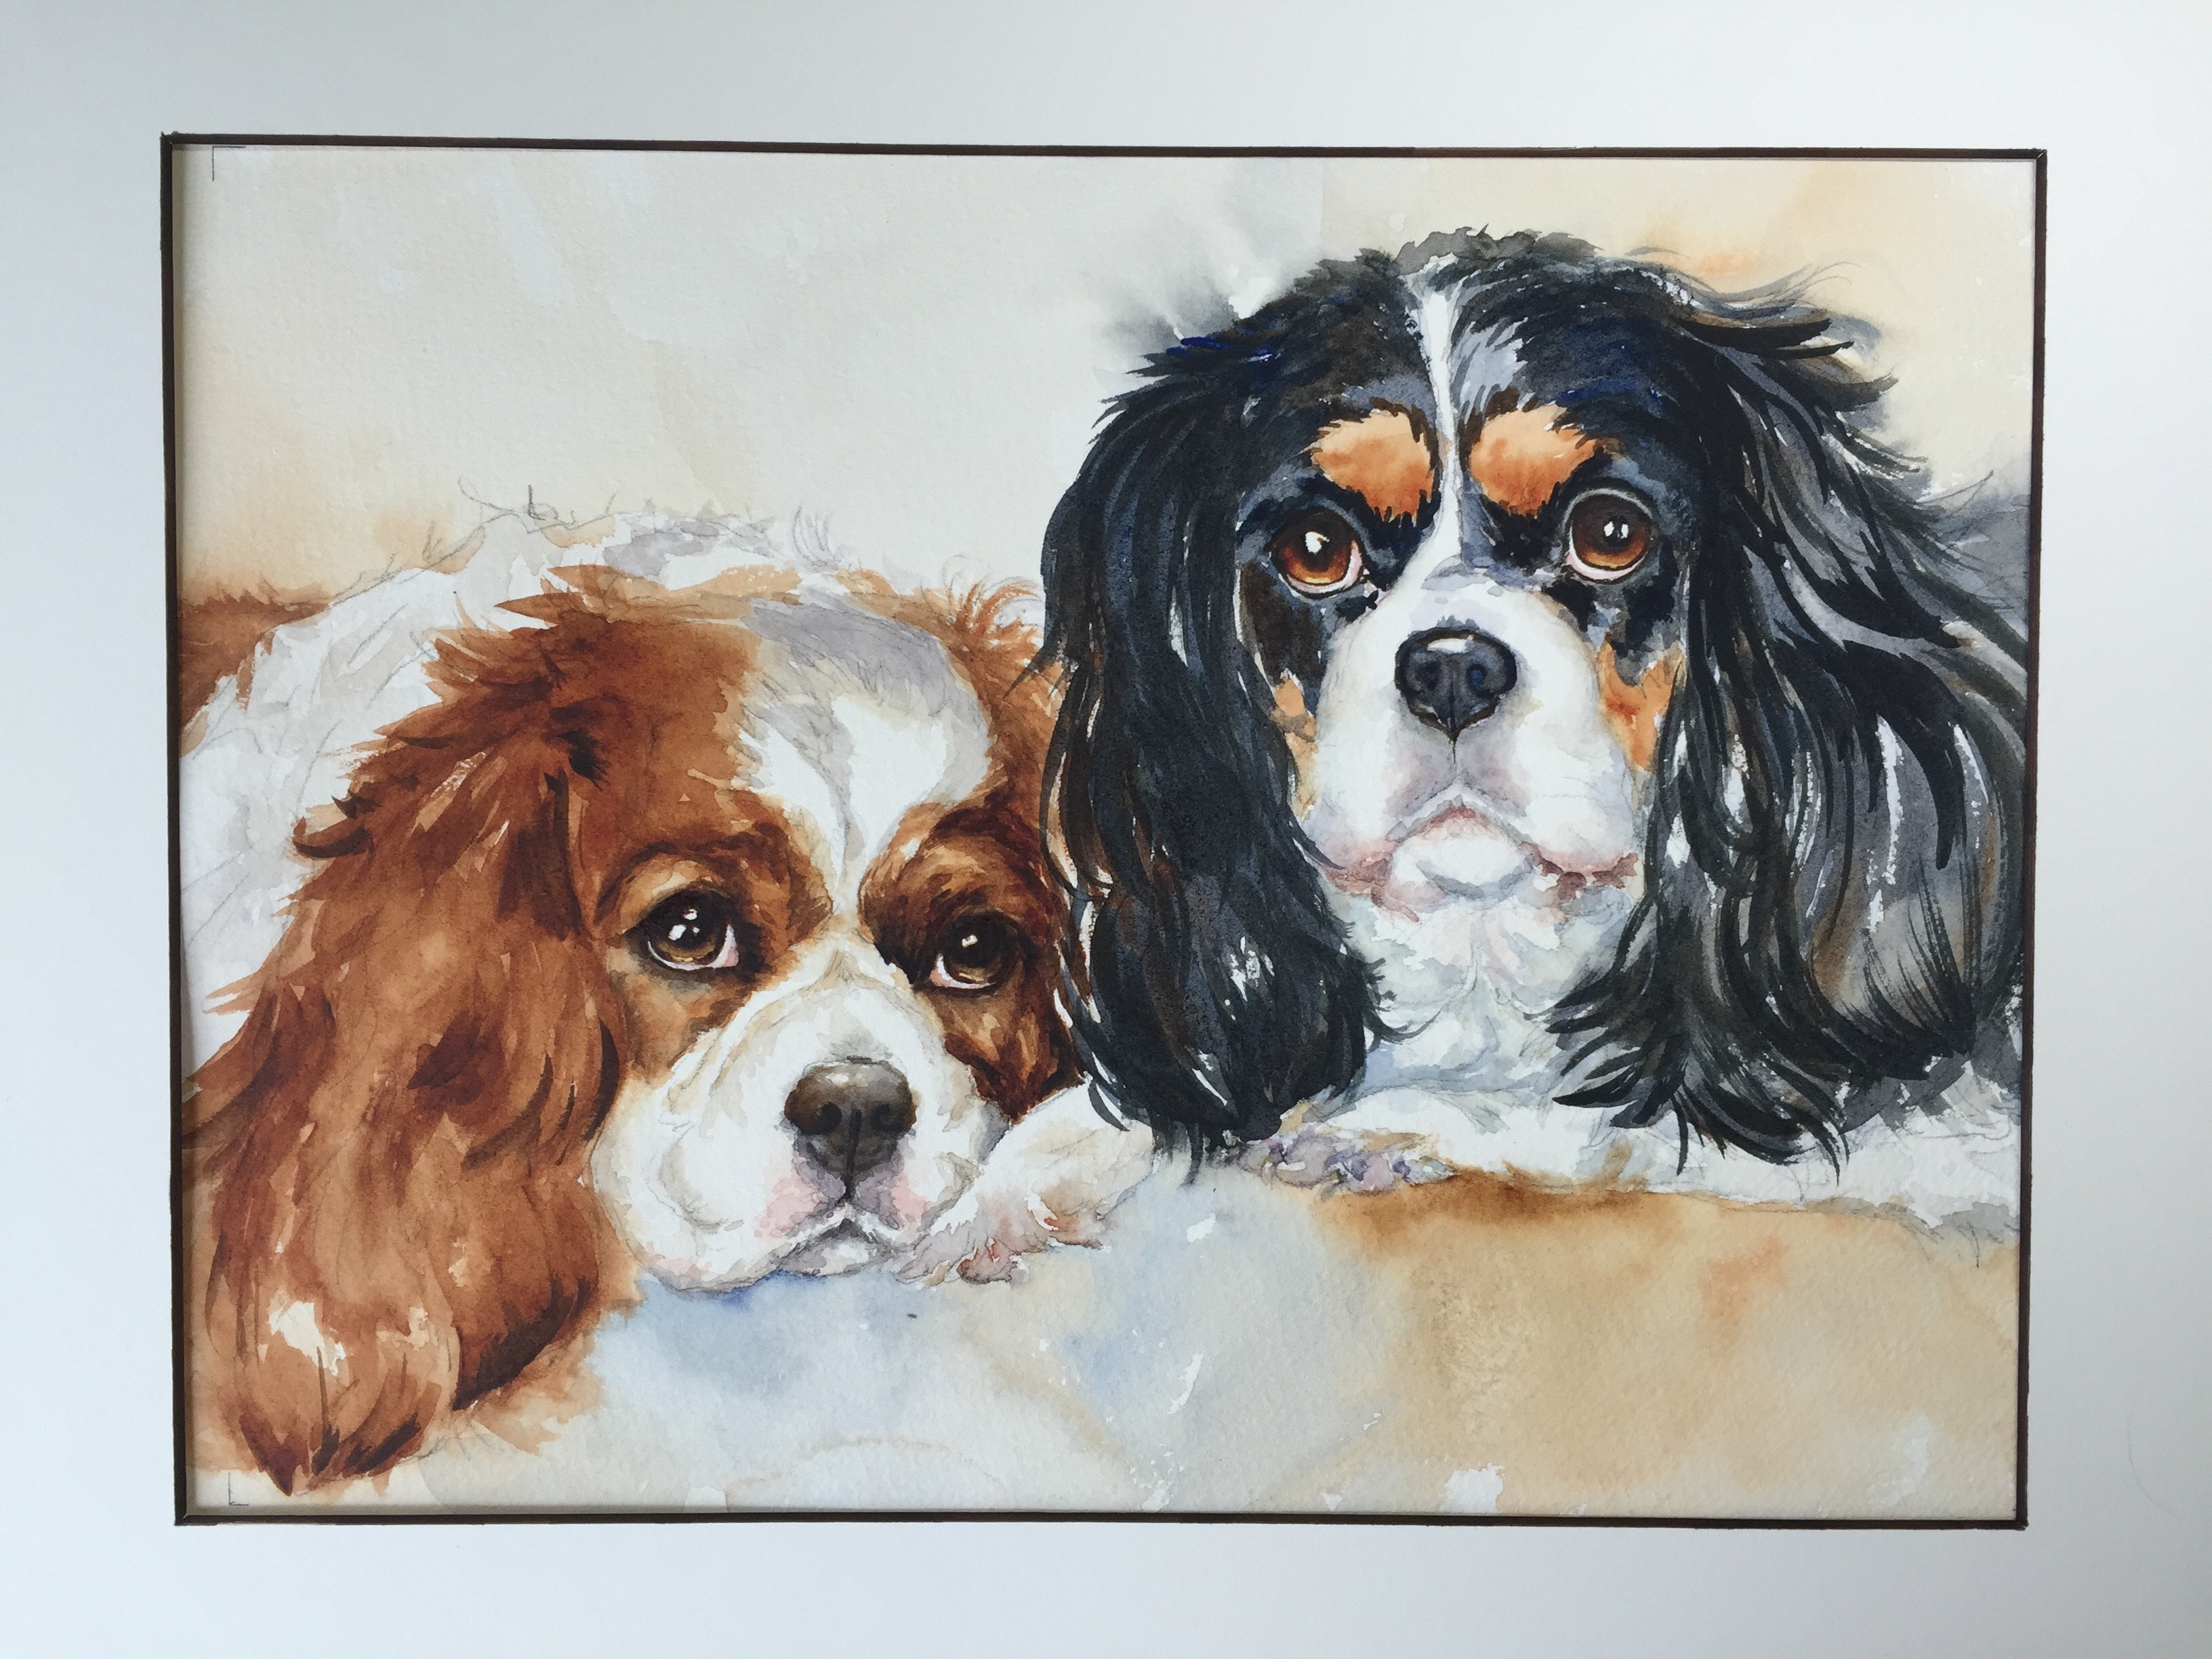 watercolor painting of a Blenhein and Tri-colored King Charles Cavaliers